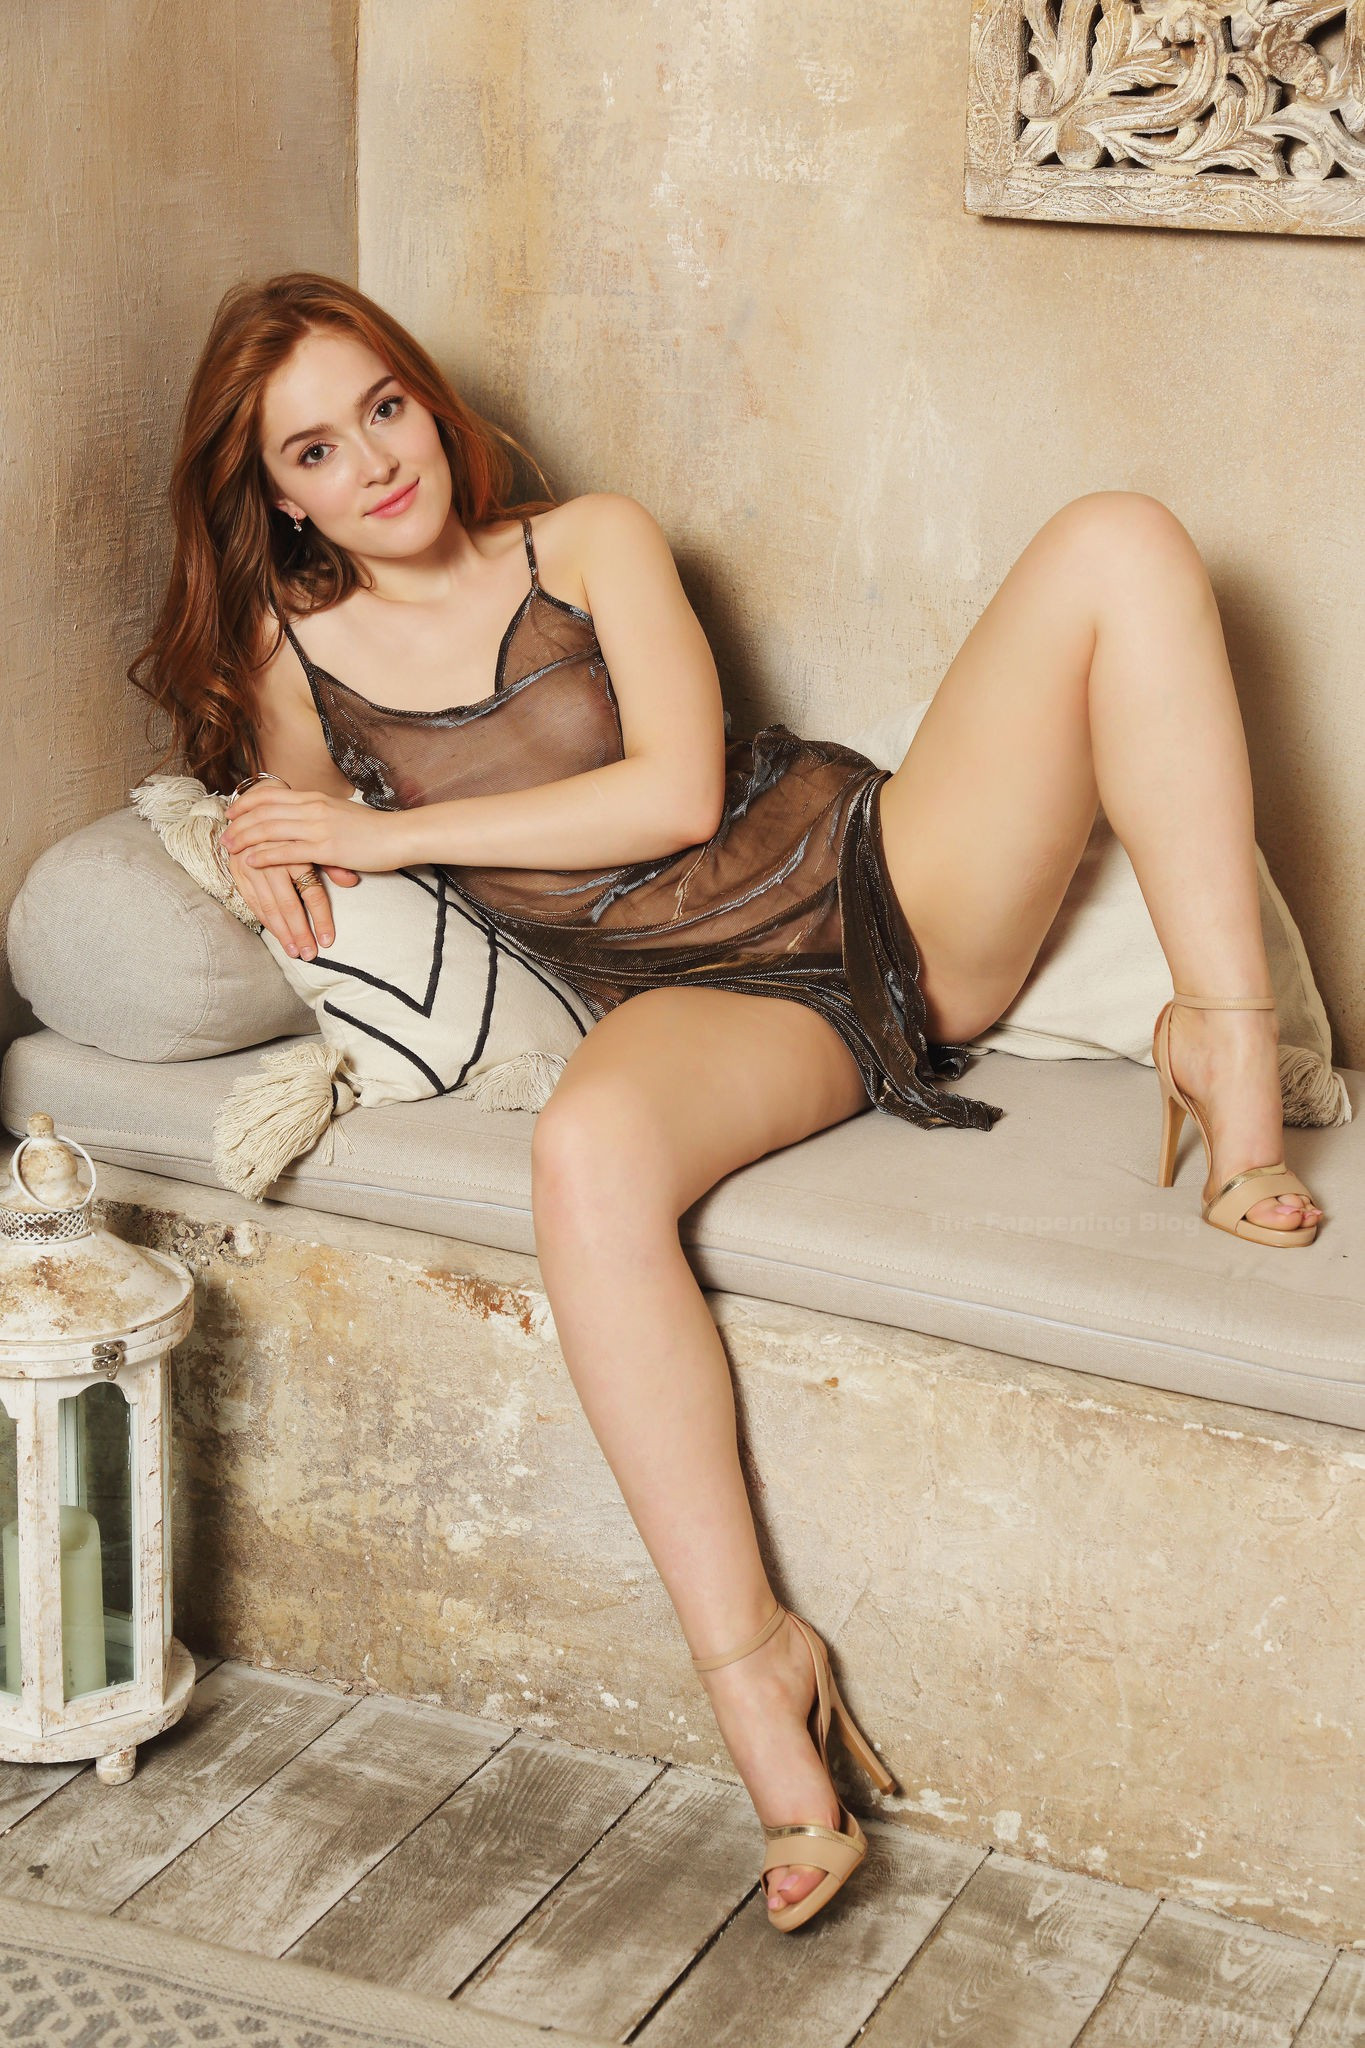 14 Jia Lissa Nude Sheer Perfection fappenings.com